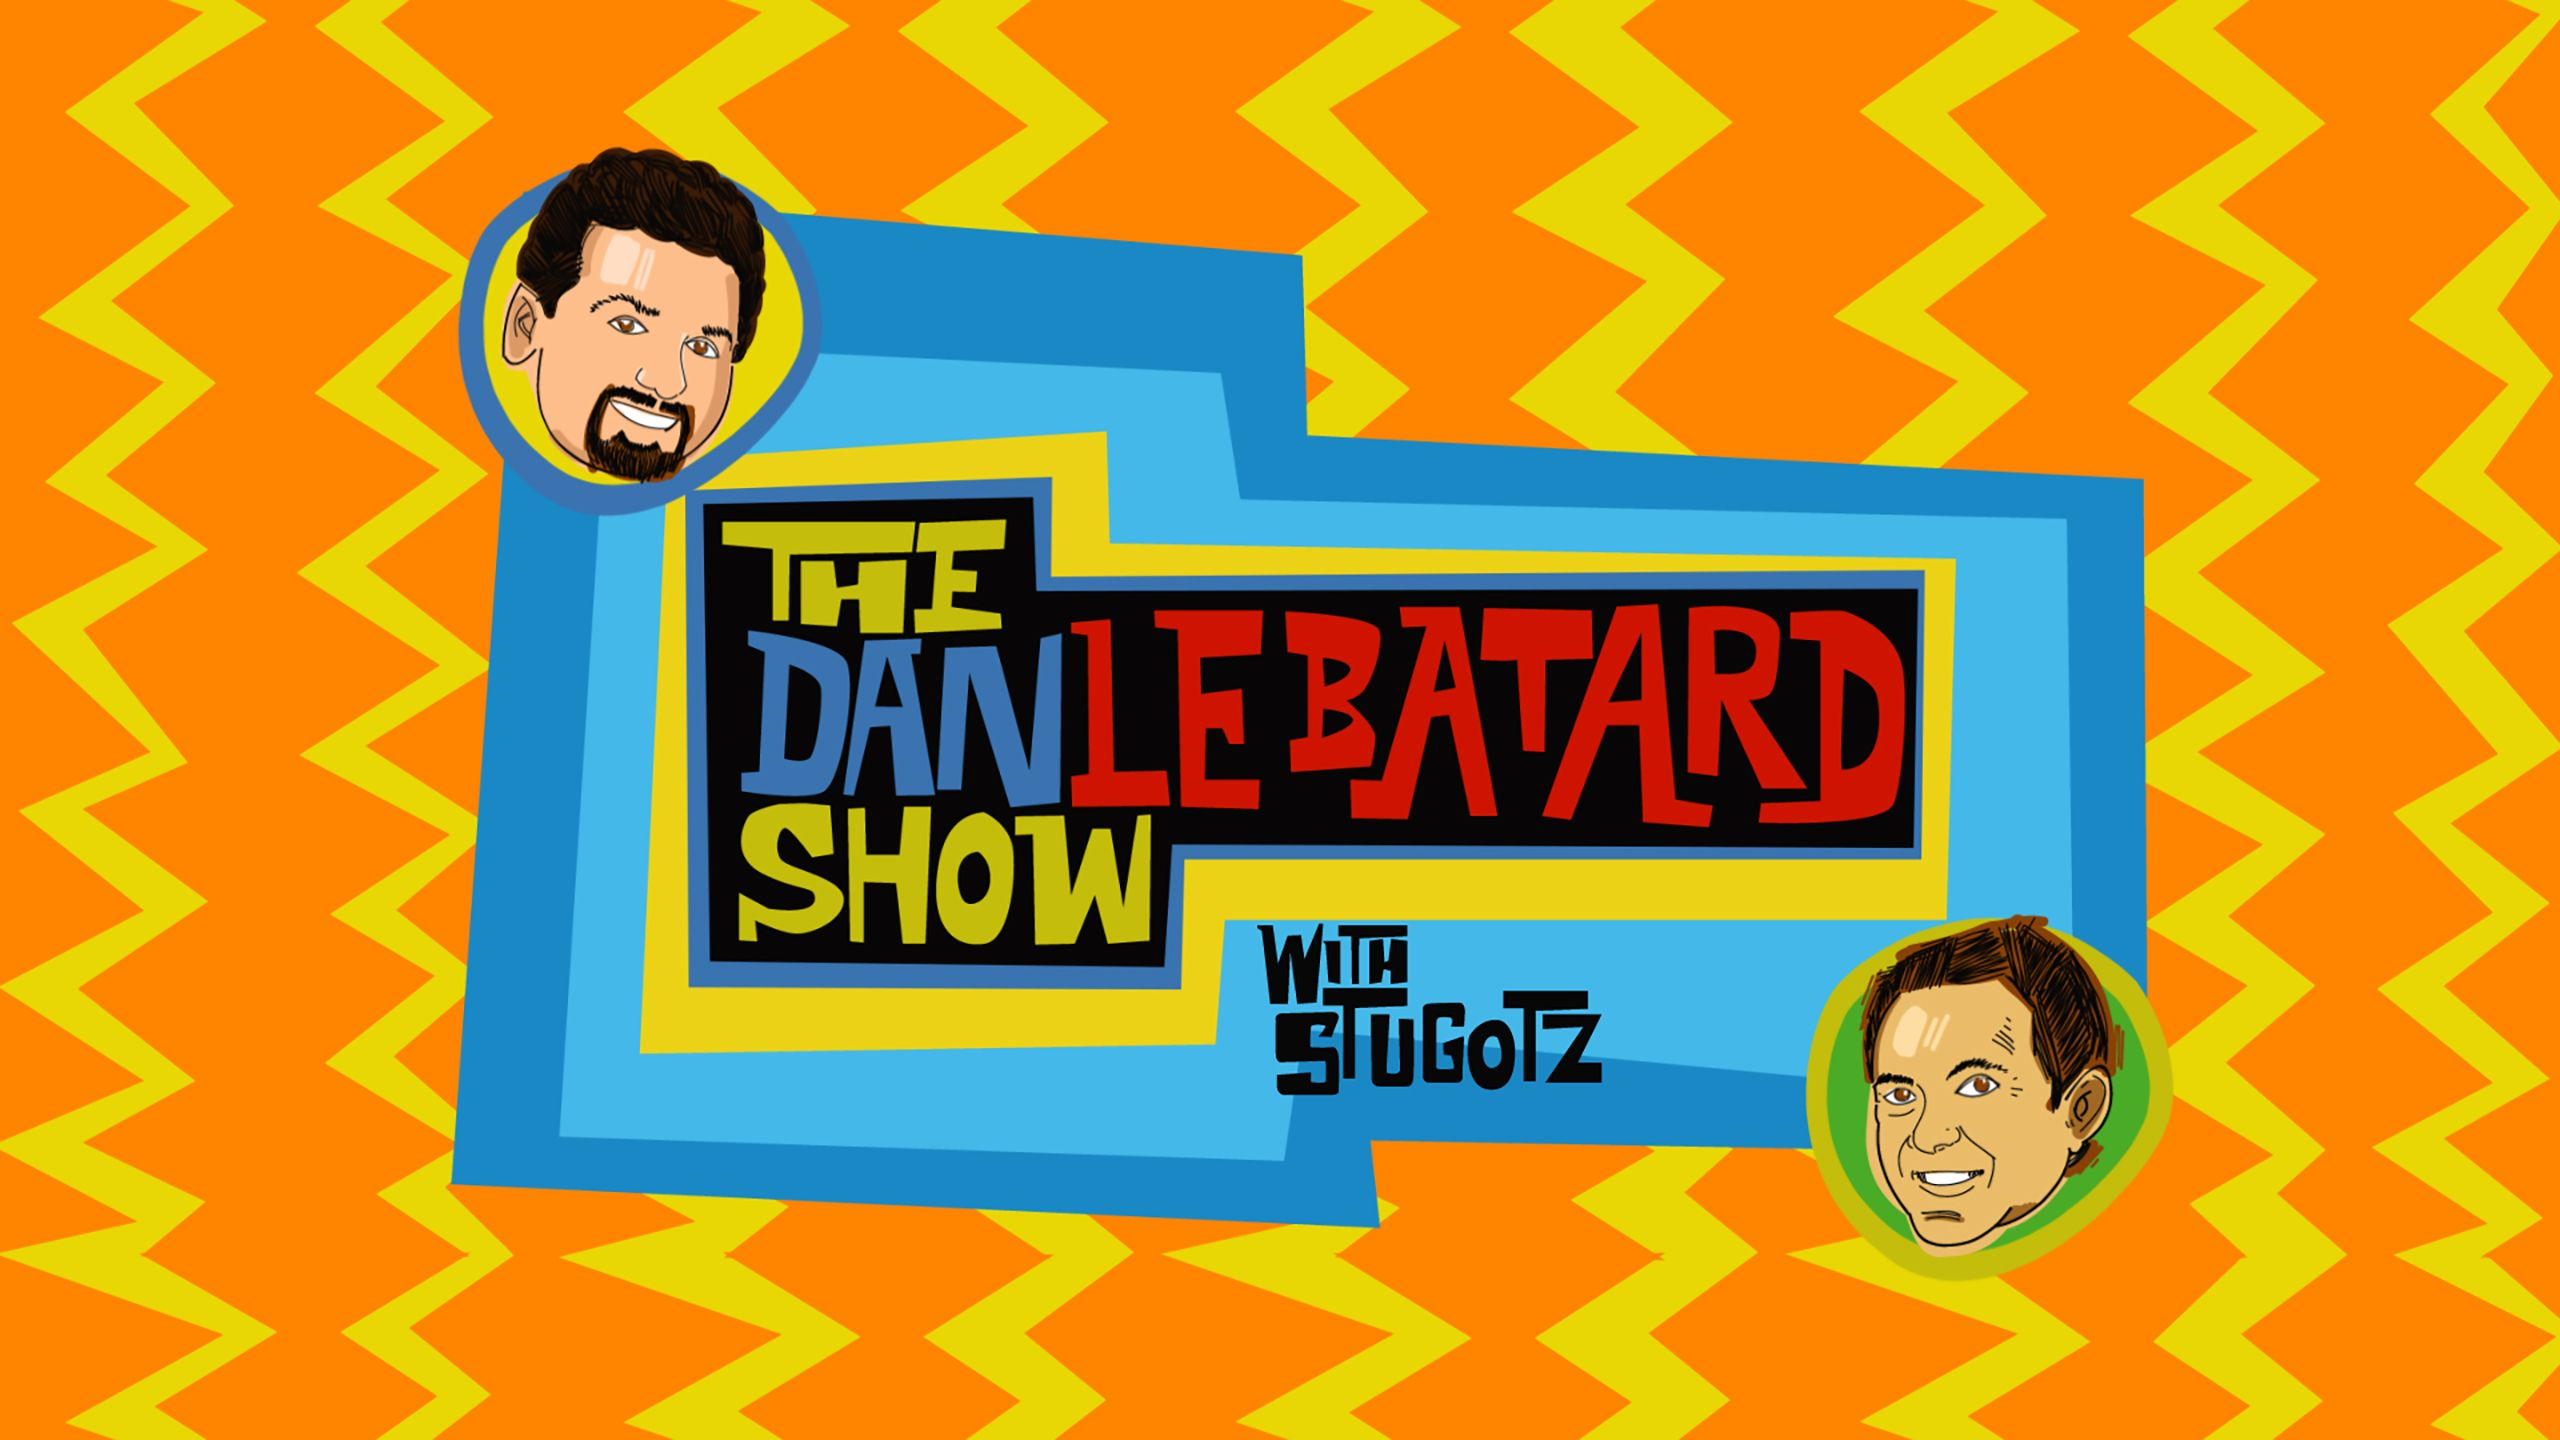 Mon, 12/18 - The Dan Le Batard Show with Stugotz Presented by Progressive